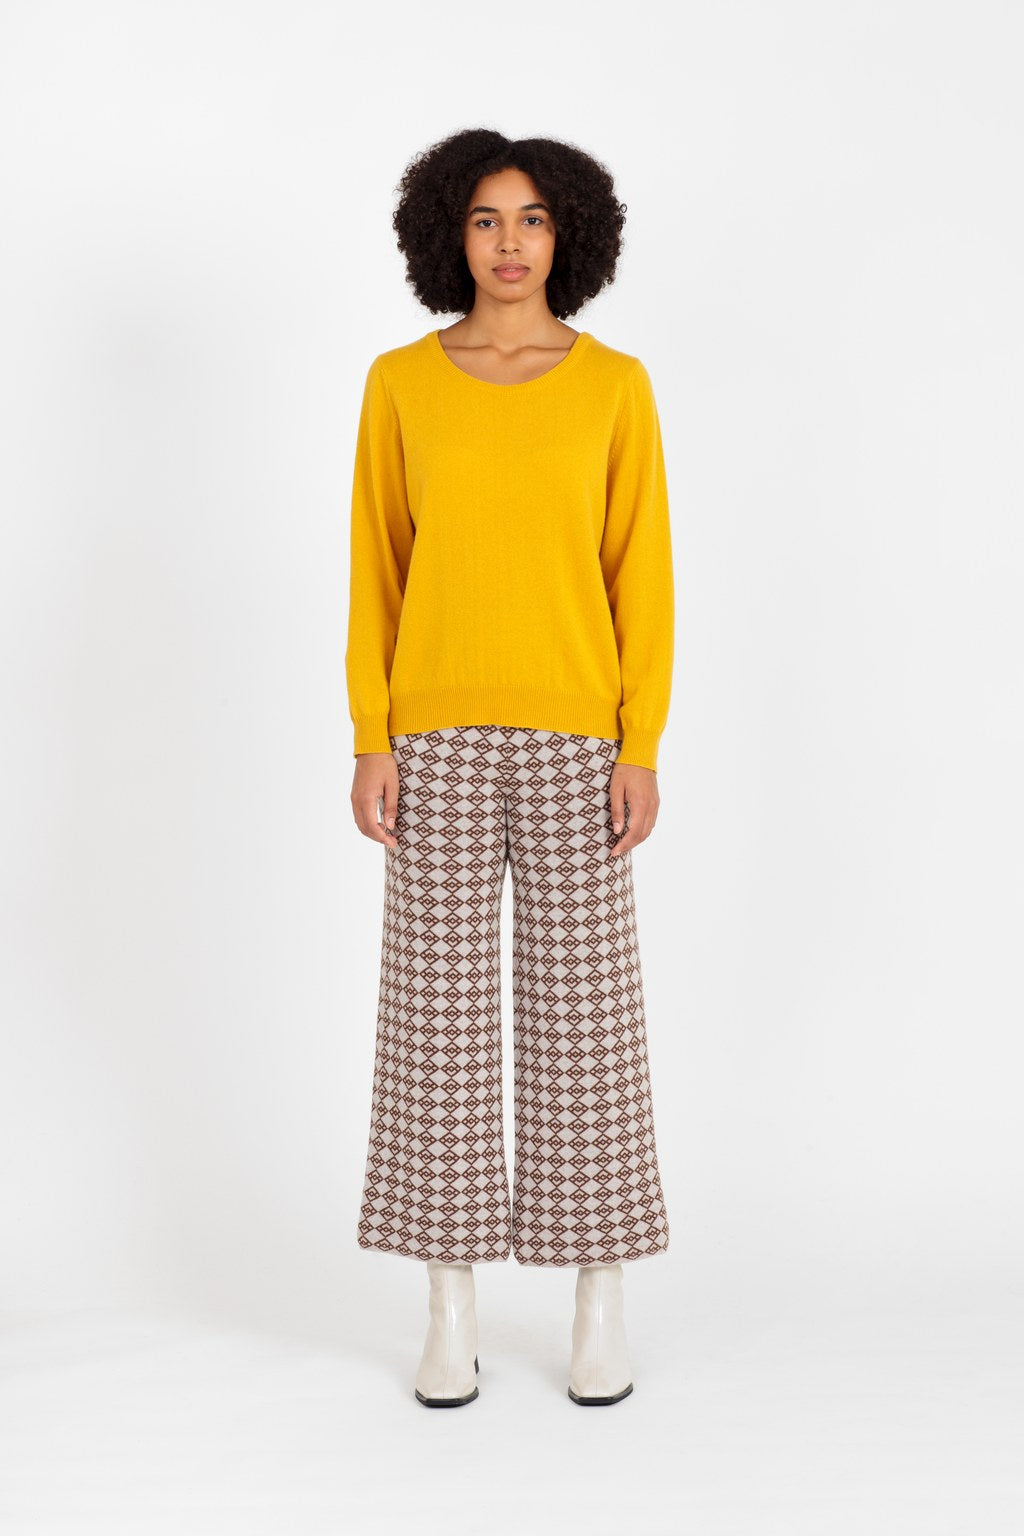 Laine cashmere sweater in yellow